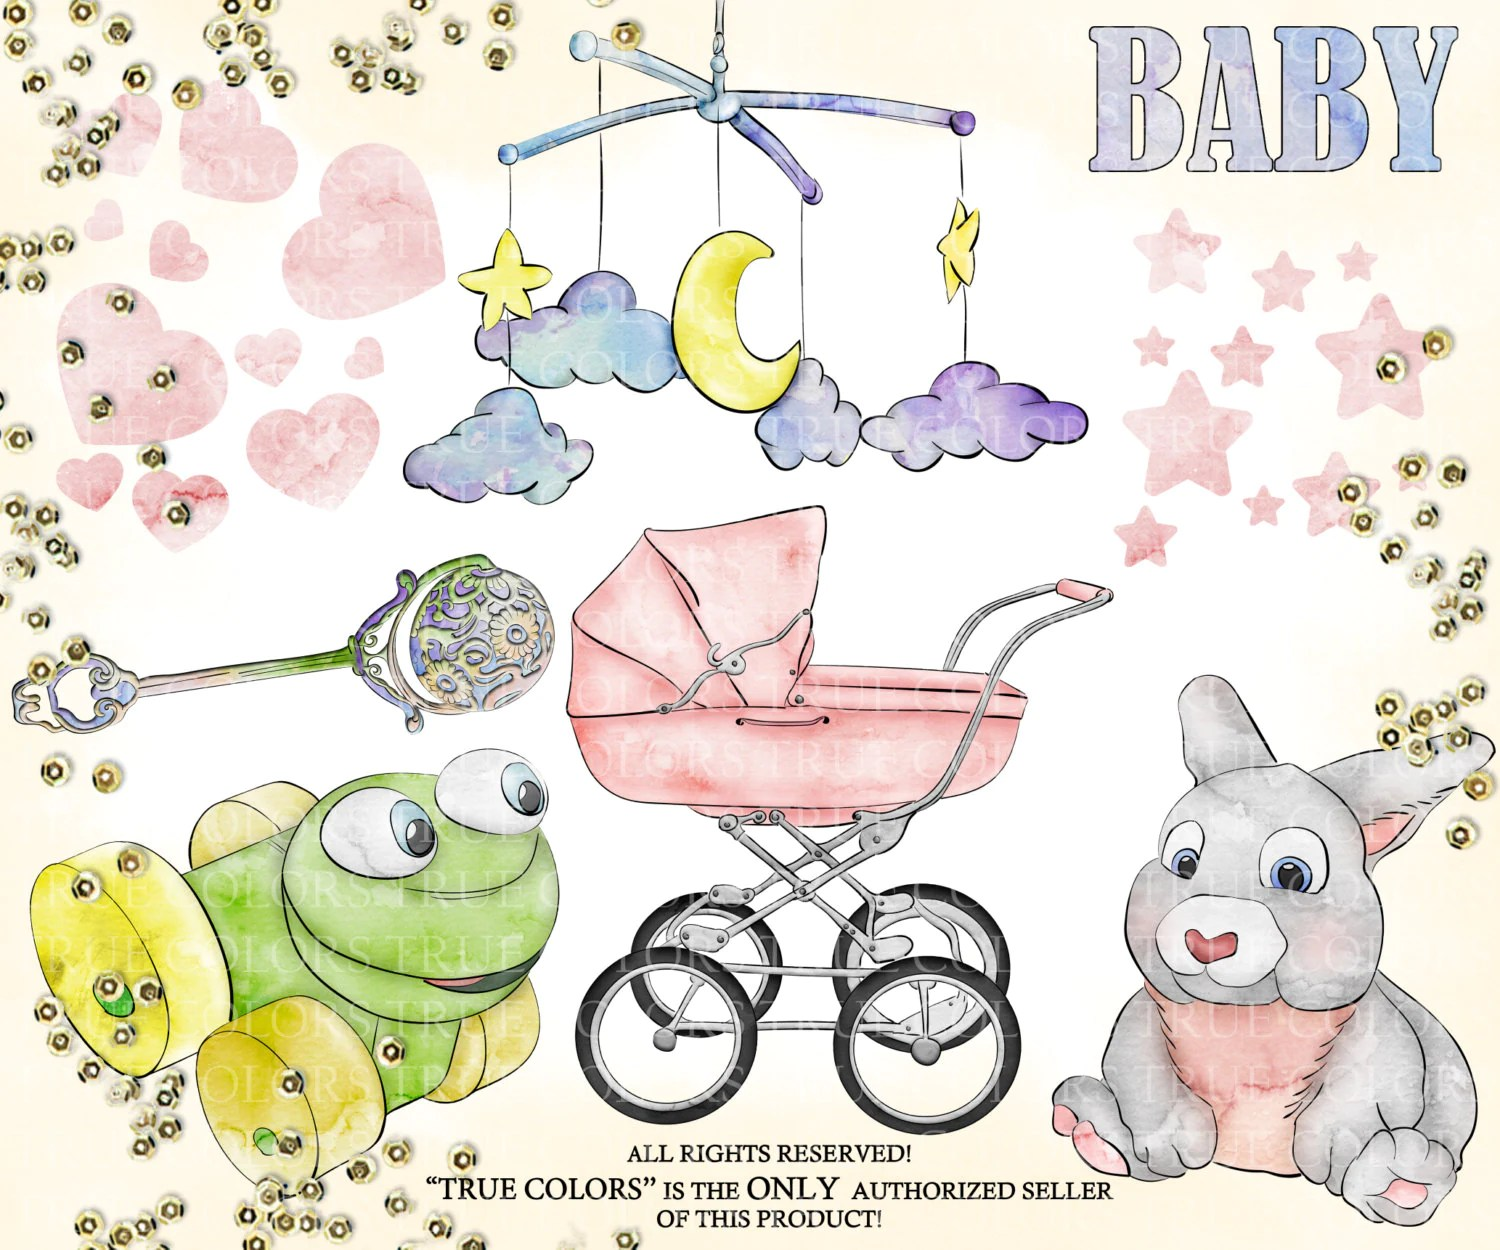 Hush Little Baby Clip Art Fashion Illustration Planner Stickers Supplies Watercolor Bunny